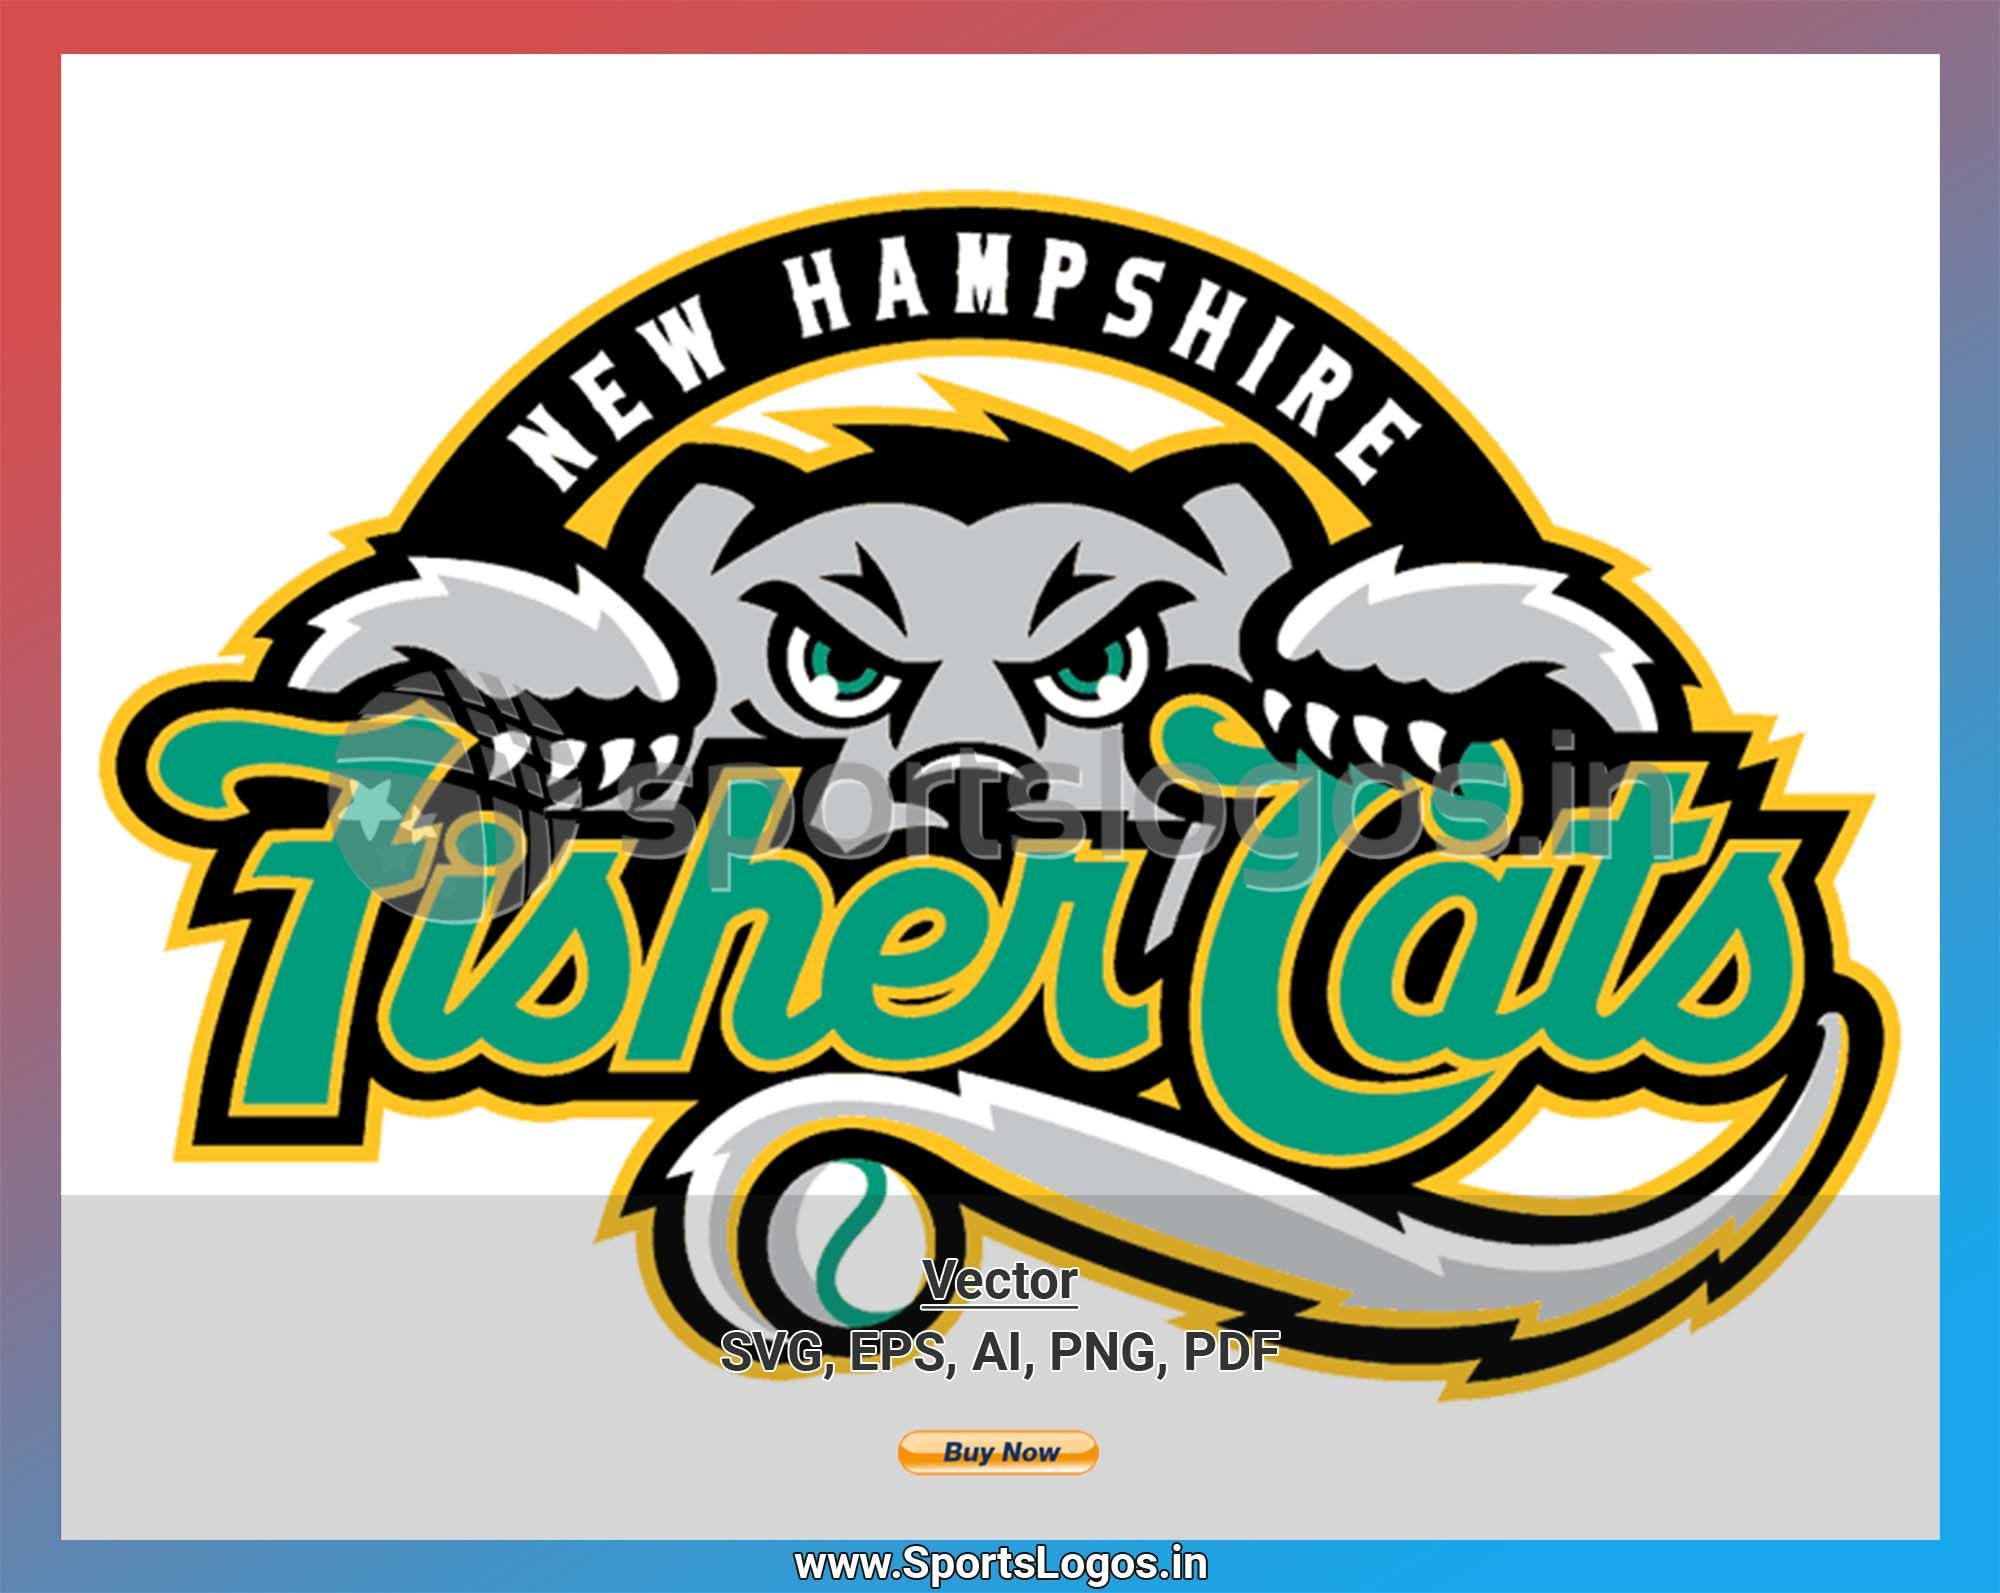 New Hampshire Fisher Cats 20082010, Eastern League